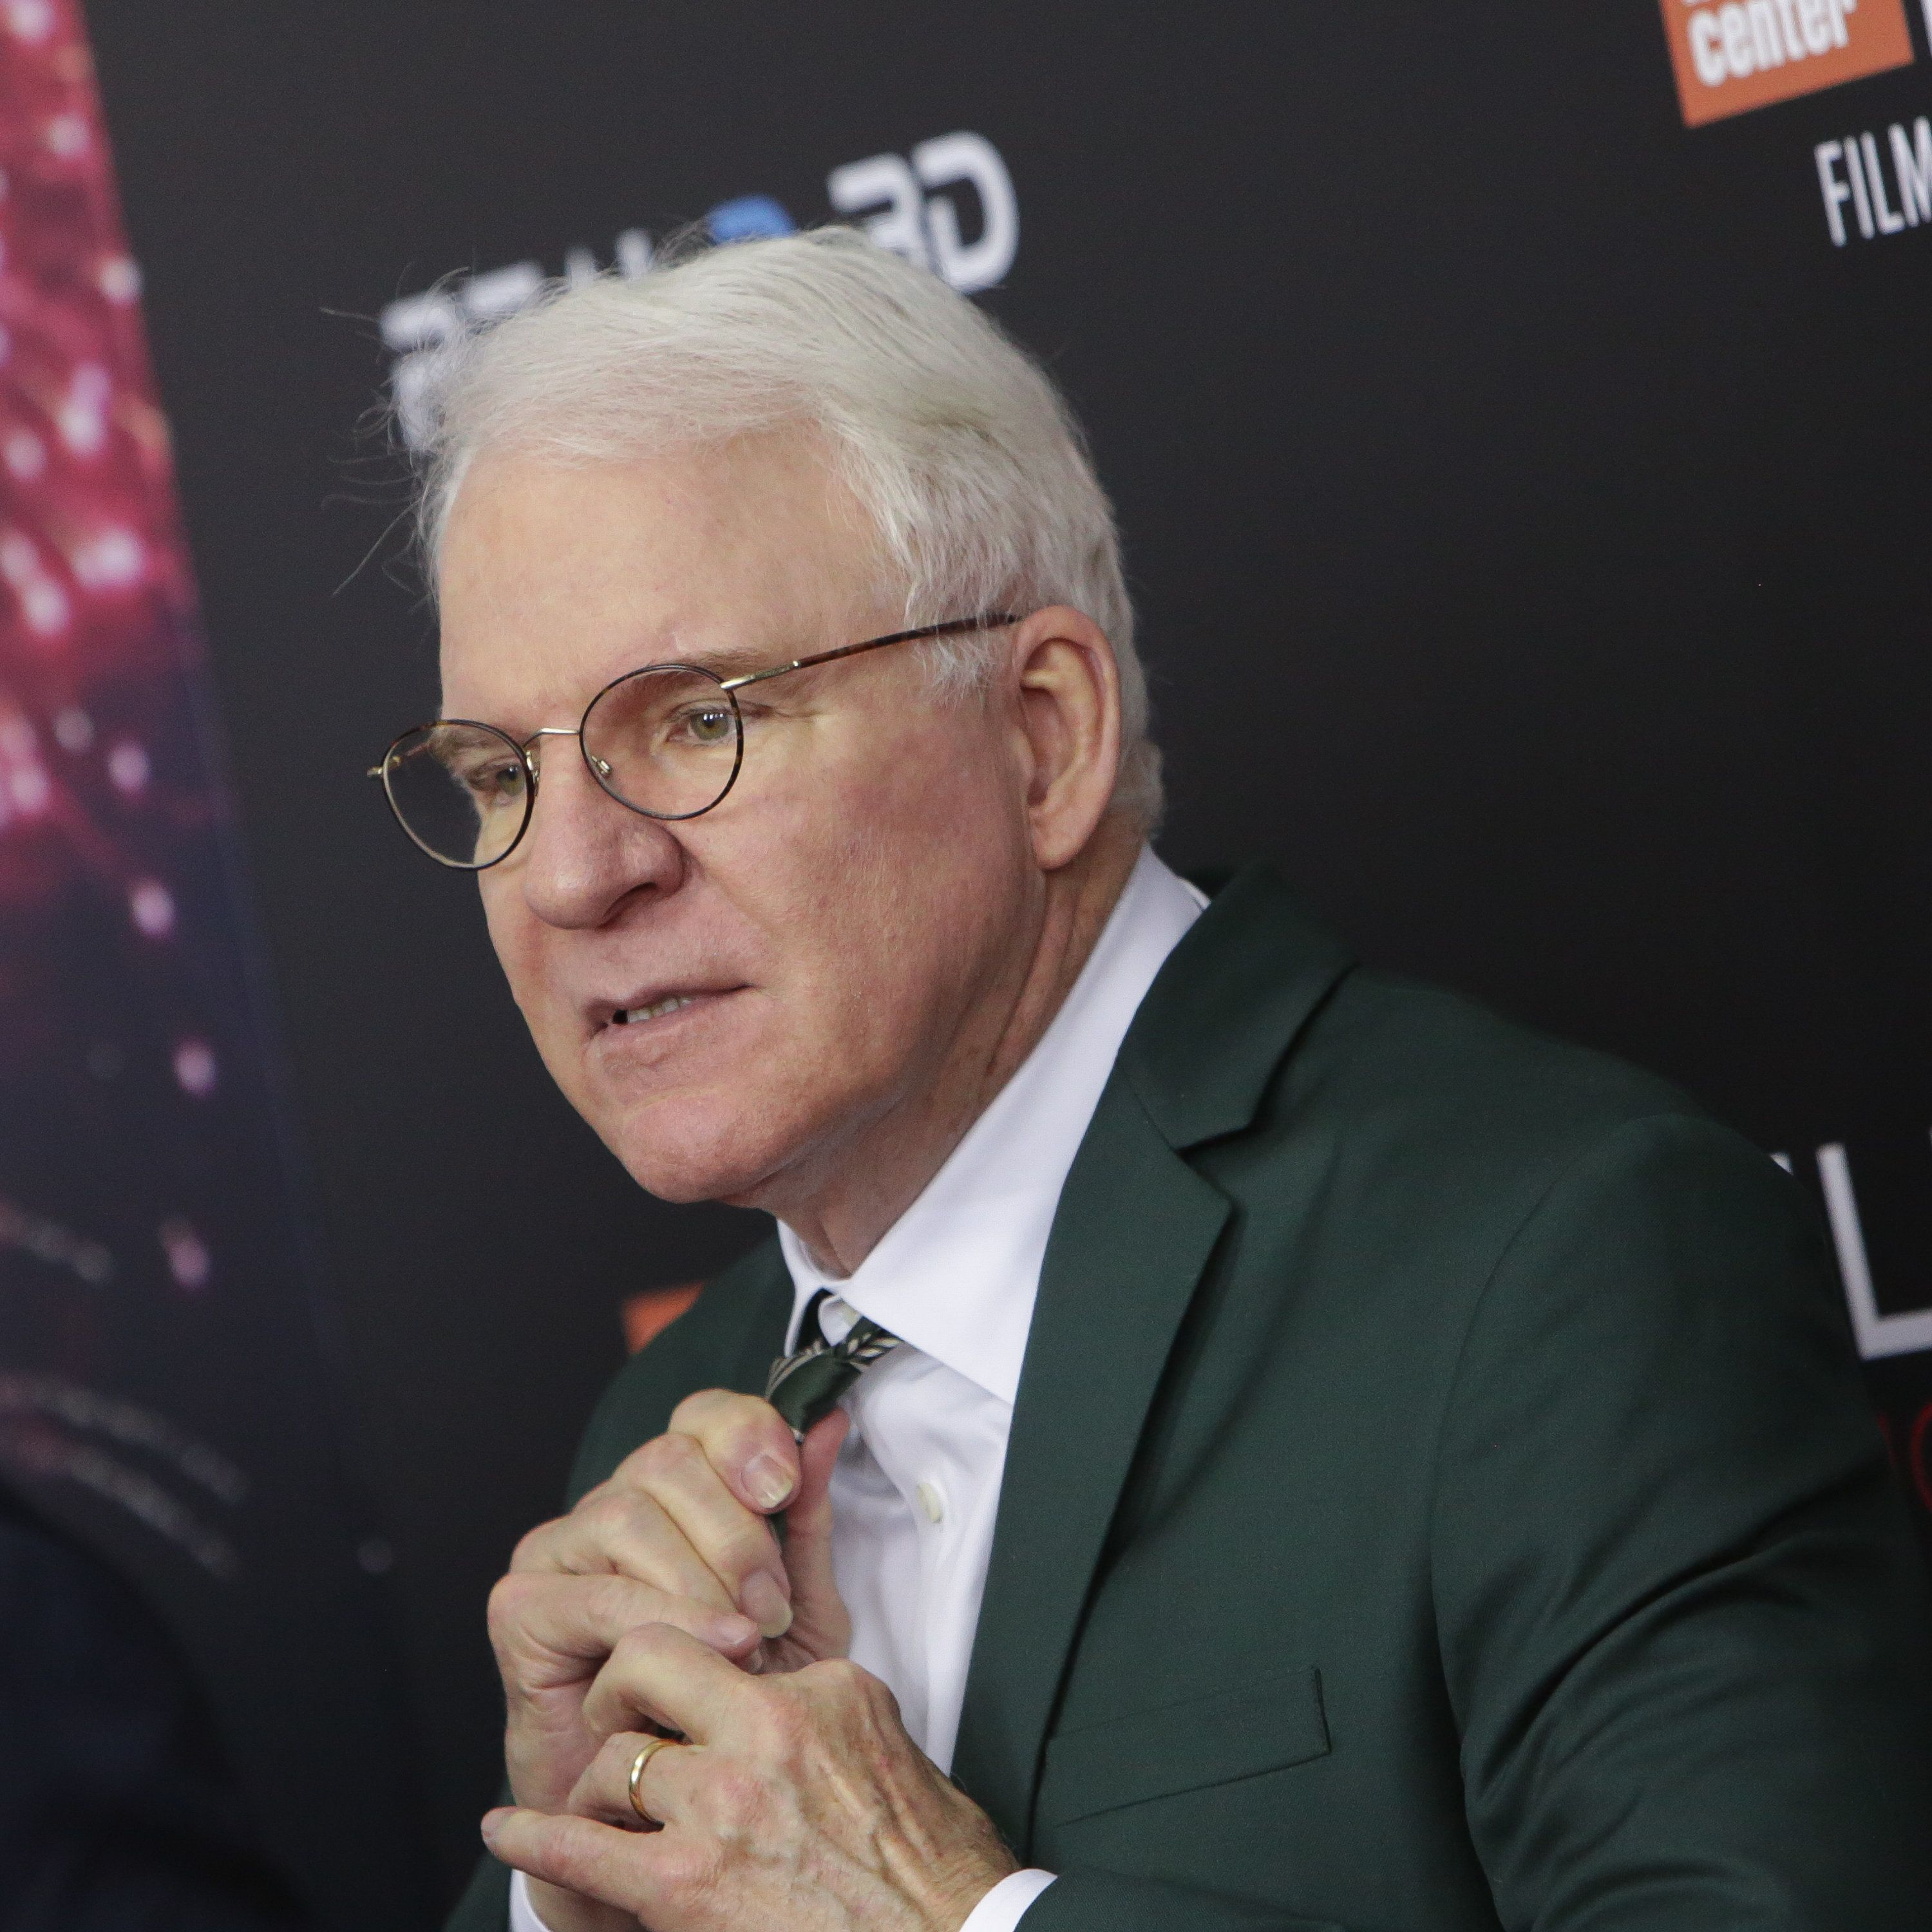 NEW YORK, NY - OCTOBER 14:  Actor Steve Martin attends the 54th New York Film Festival 'Billy Lynn's Long Halftime Walk' premiere held at AMC Lincoln Square Theater on October 14, 2016 in New York City.  (Photo by Brent N. Clarke/FilmMagic)